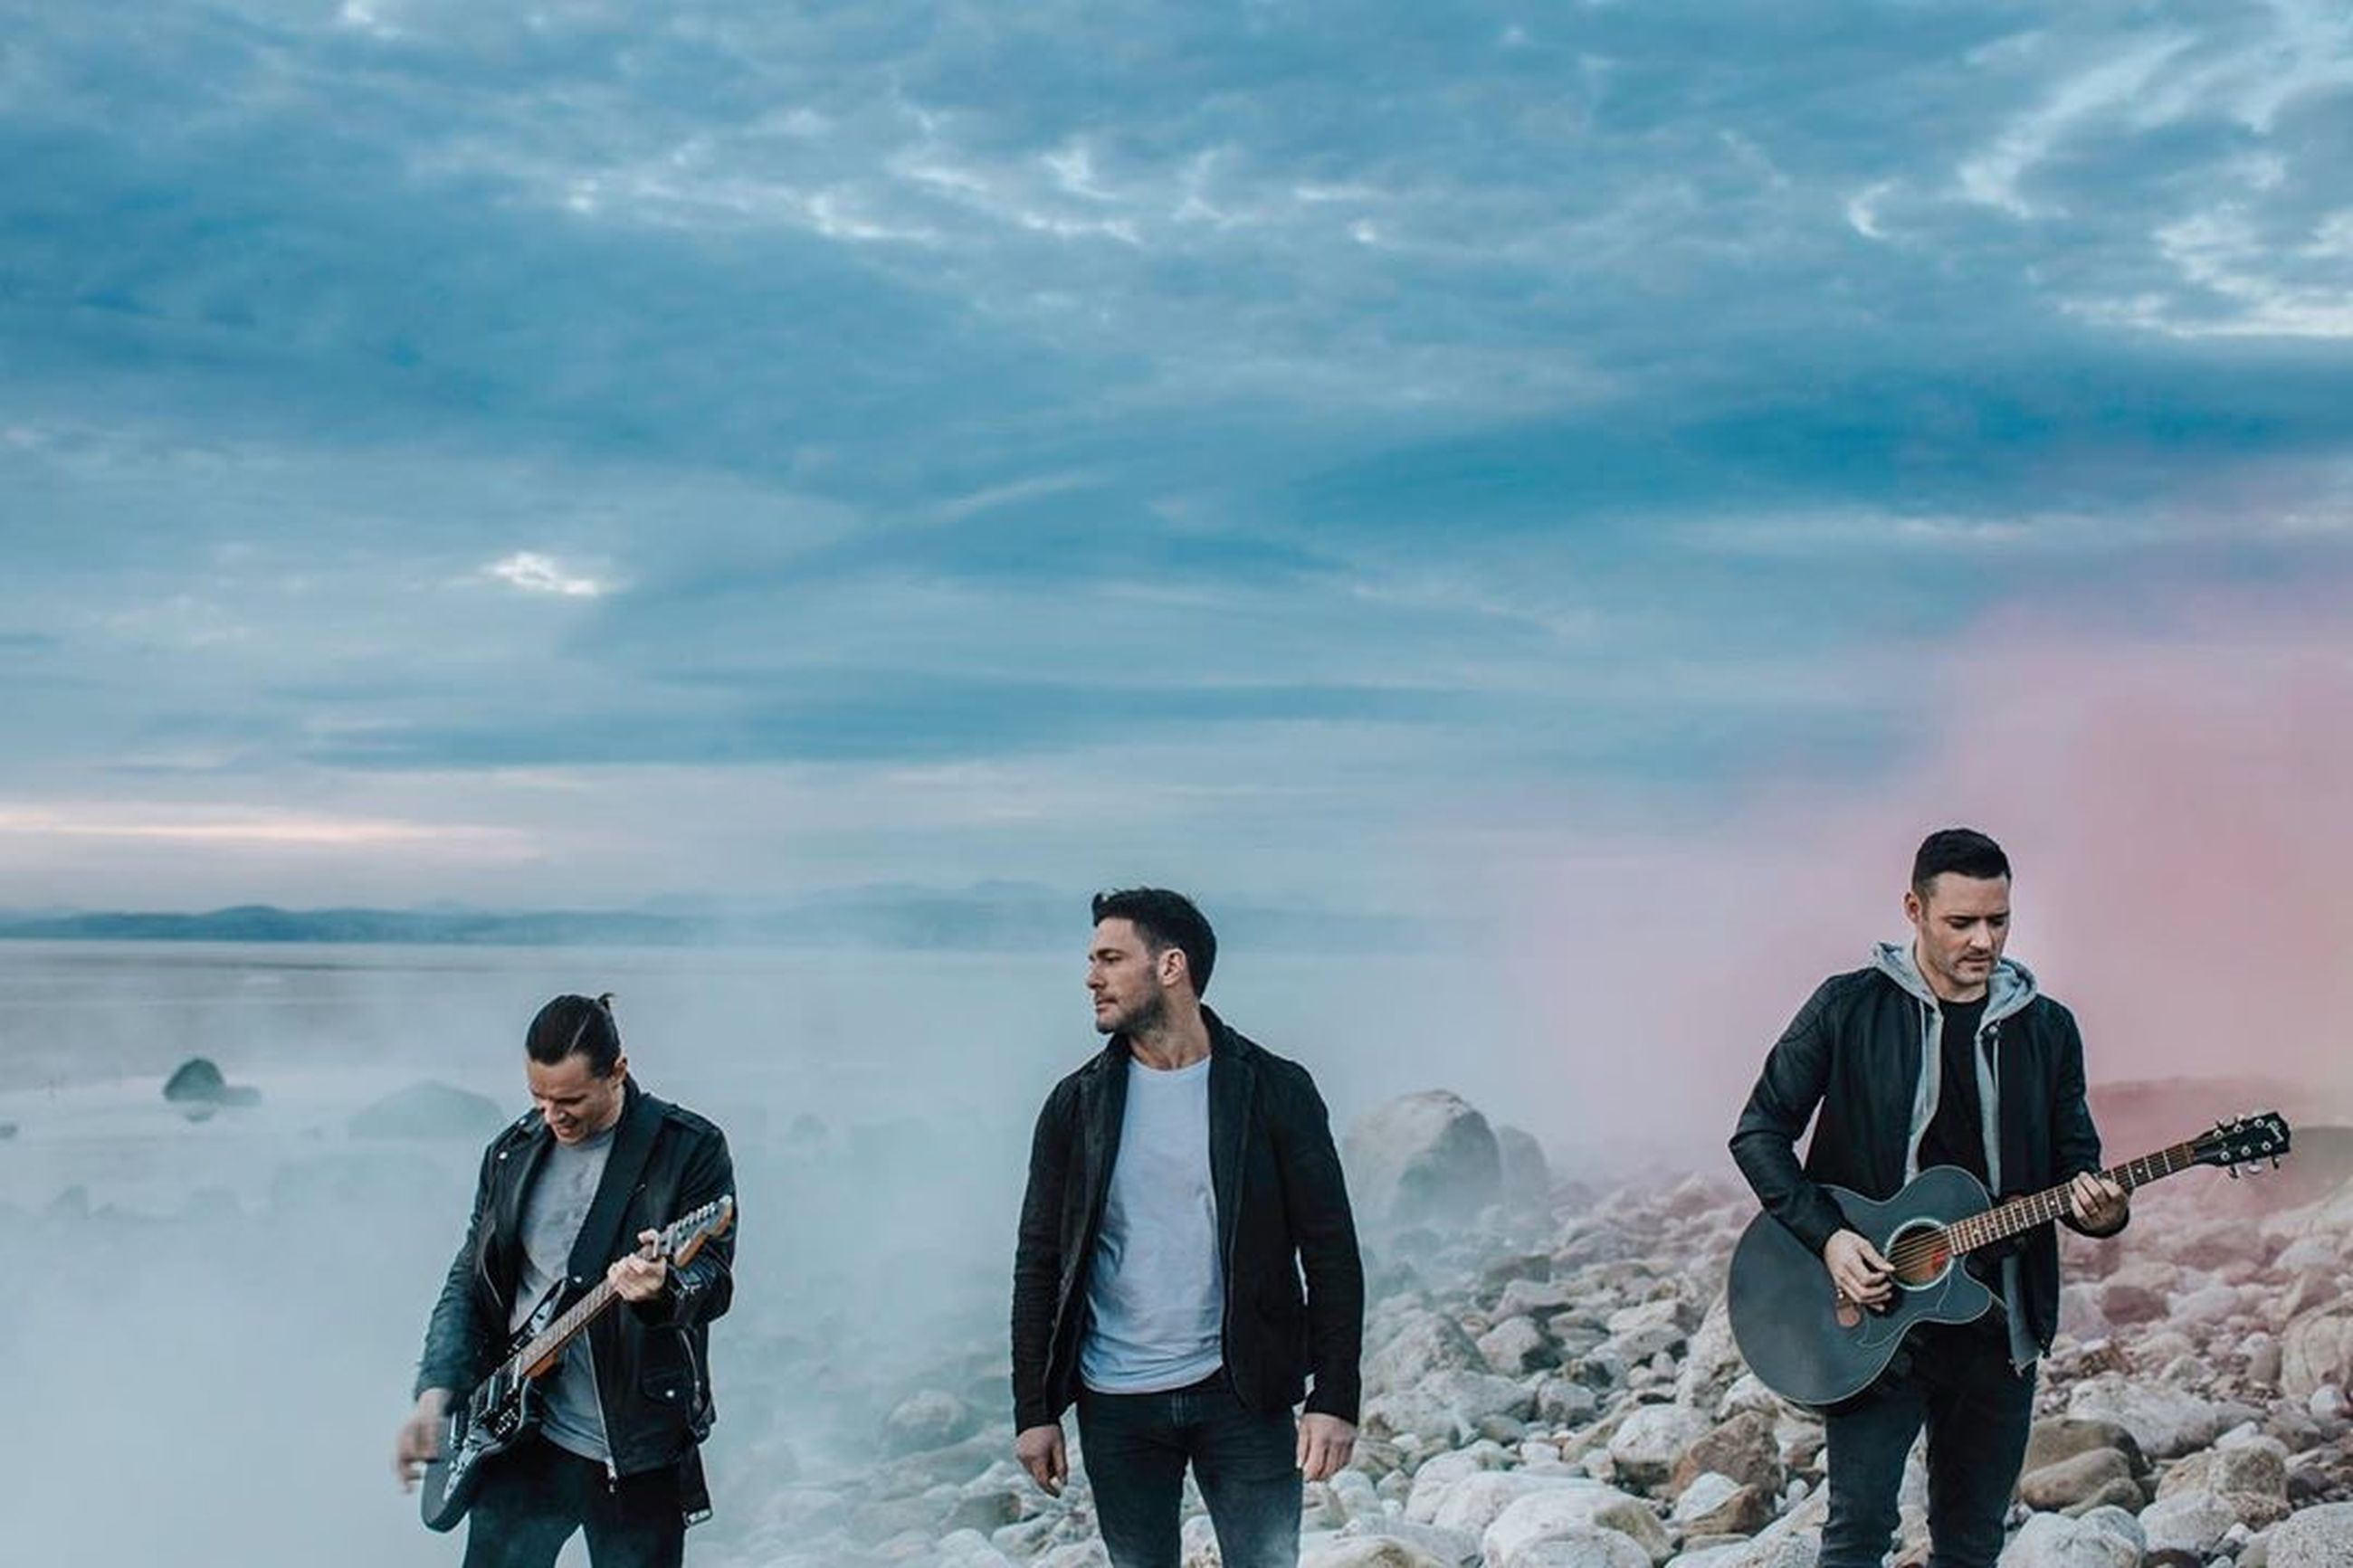 sky, young men, cloud - sky, men, leisure activity, real people, young adult, lifestyles, front view, sea, casual clothing, musical instrument, standing, nature, people, togetherness, guitar, string instrument, friendship, outdoors